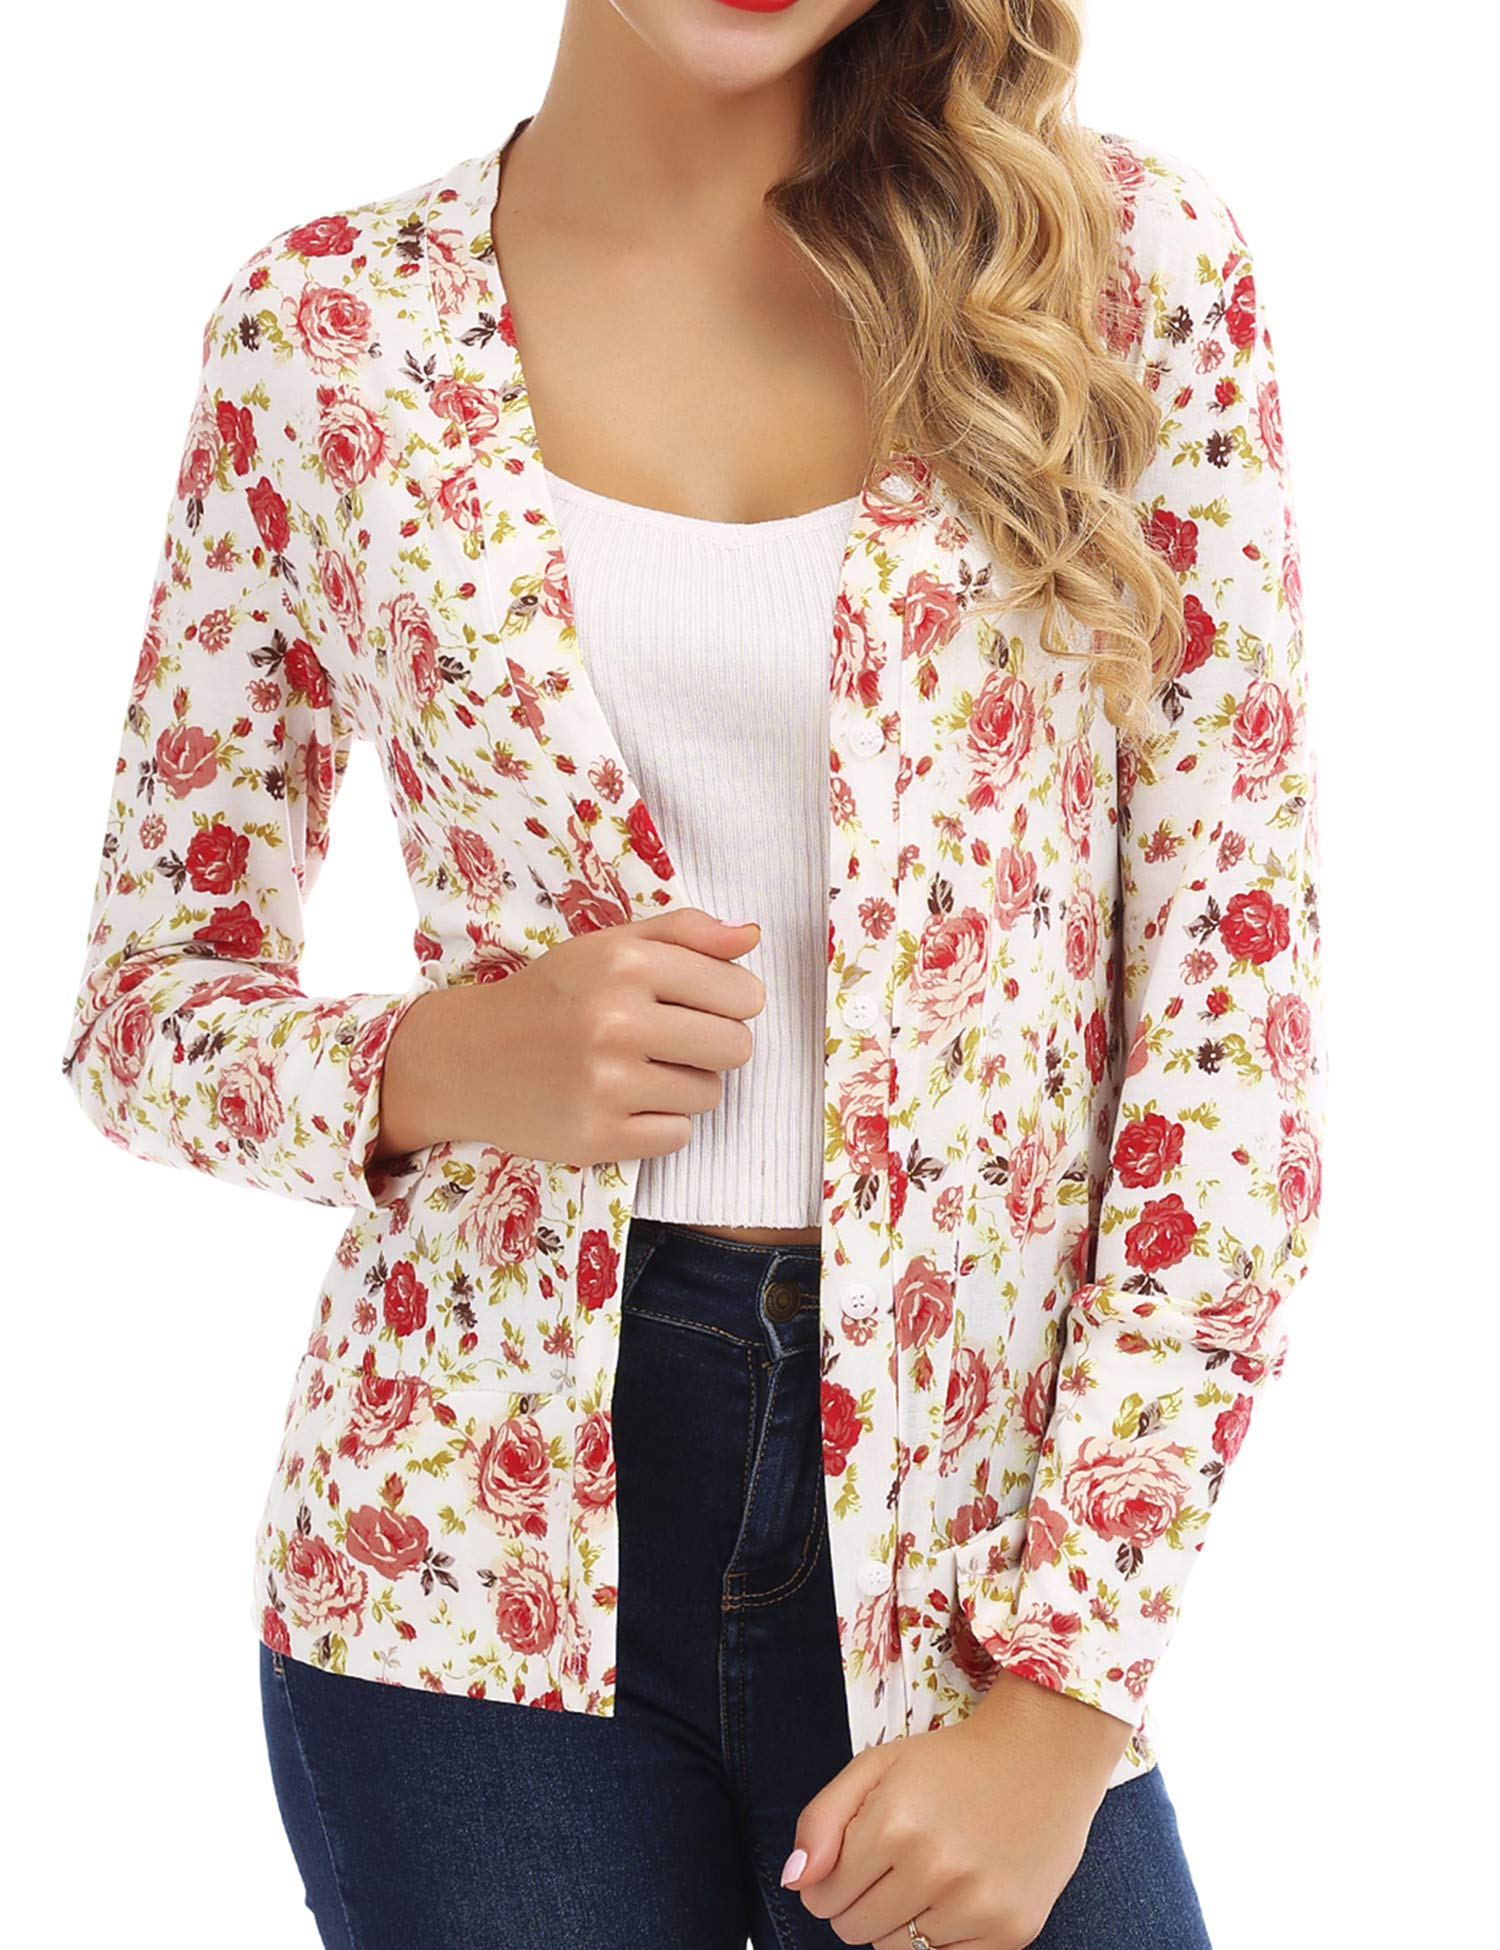 FISOUL Women's Cardigan Button Floral Turn-Down Long Sleeve Blouse Tops XL White